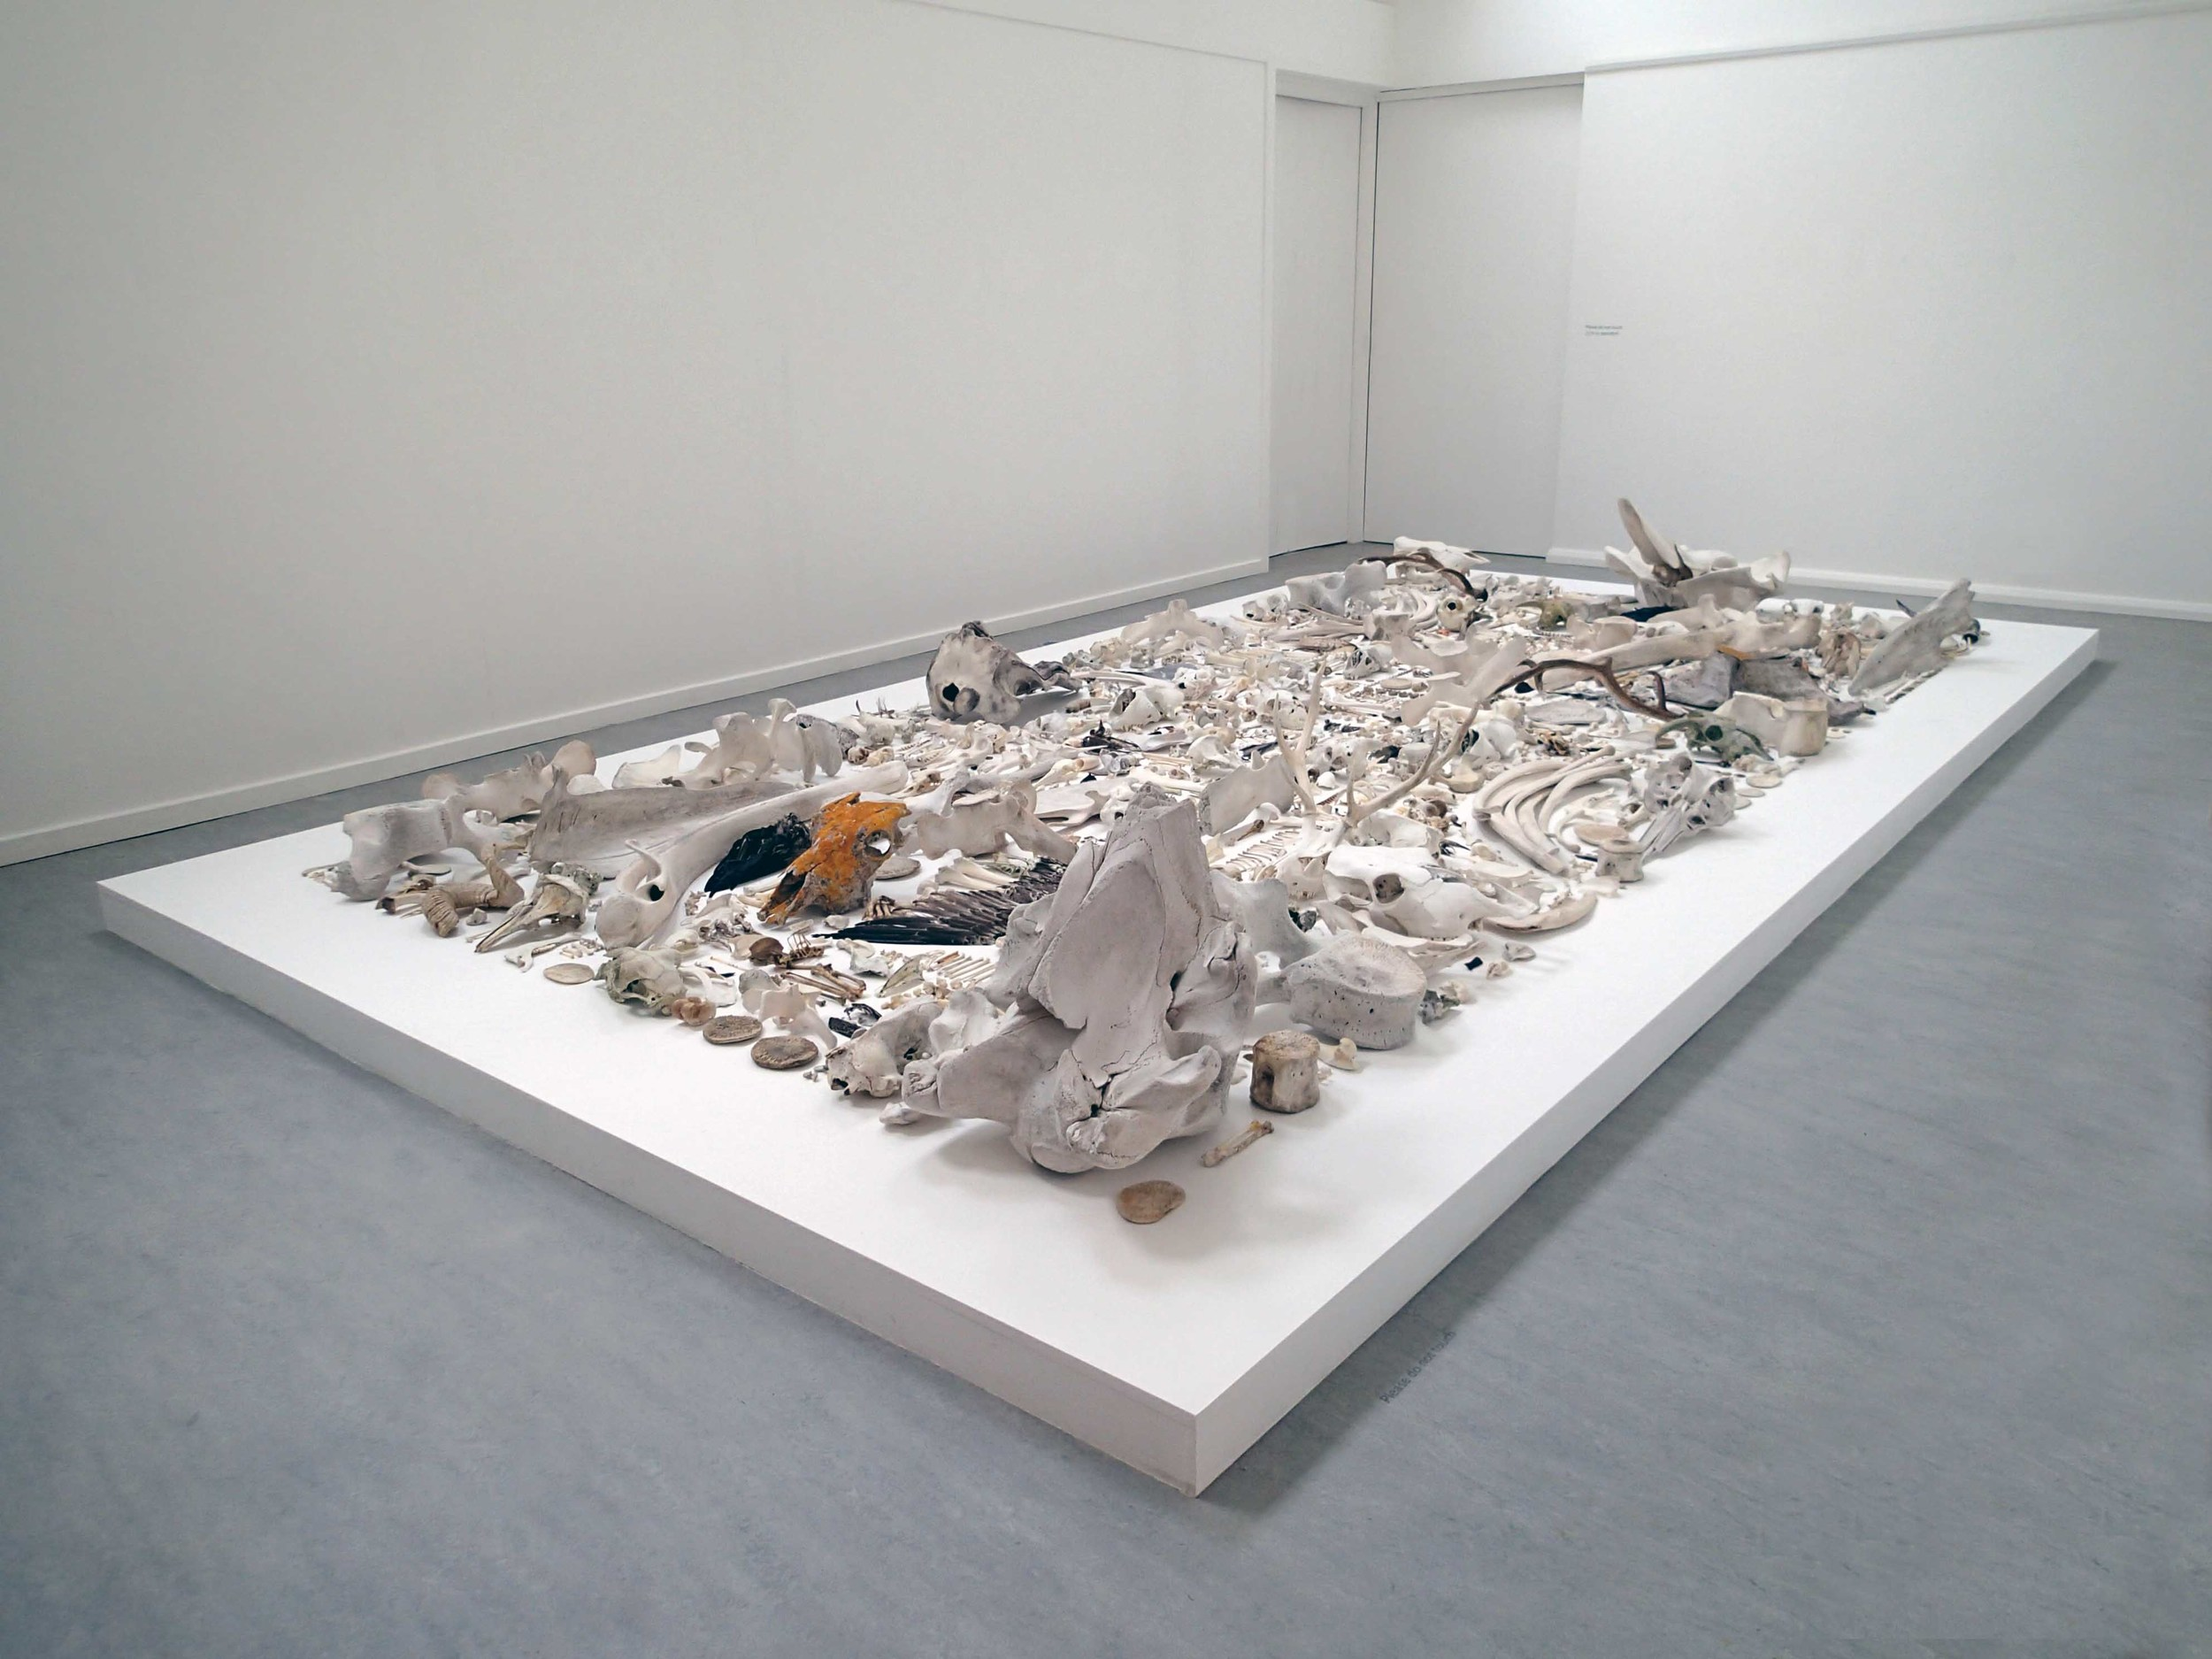 Biomass (NU20072014),     2015  Faunal remains arrayed on 3.5m x 5.79m x 20cm plinth.              Commissioned for   Broad Reach   an -  ATLAS Arts  project,   Taigh Chearsabhagh Museum & Art Centre, March, 2015.  Drawing inspiration from the natural world, particularly the phenomenal experience of landscape, much of my work originates from regular, solitary walks in wild and borderland places. Maintaining an open relationship to location and materials, a process of slowed down, engaged looking is echoed in the creative methodology and realisation of drawings, object arrays and photographs.  Composed from a diverse collection of faunal remains gathered on Uist across a seven-year period,  Biomass (NU20072014)  bears witness to this on-going temporal relationship. Undeniably an expression of my profound fascination with nature, the work also seeks to articulate a search for meaning through commonality, rather than hierarchy.  Consisting primarily of the hard parts of the body such as skulls, bones and teeth, the array here offers no system for interpretation or scientific analysis. Rather, their material actuality invites the viewer to consider all in relation, one to another and to the spectator.  Images © Sophie Morrish 2015